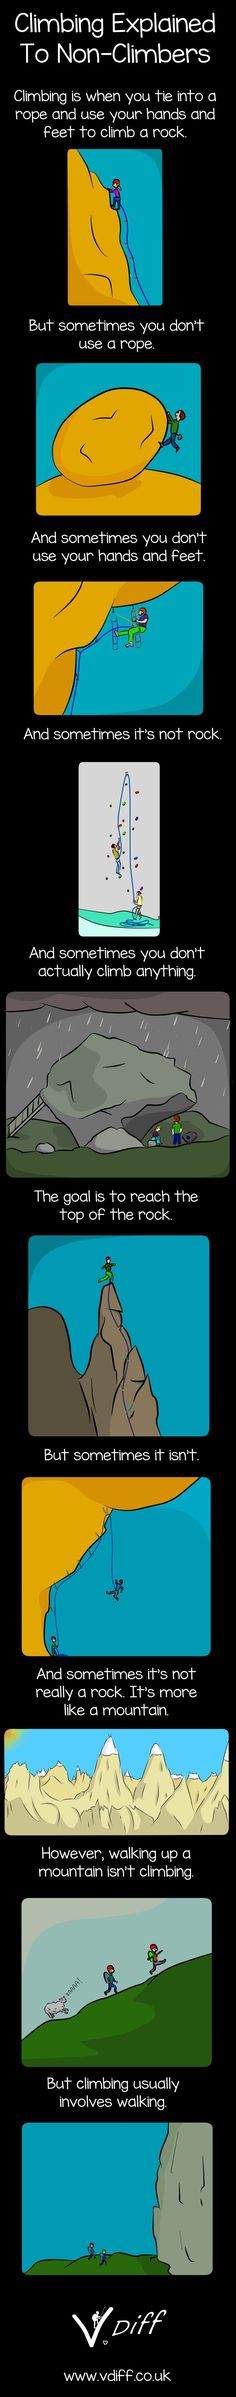 Rock climbing explained to non-climbers. Follow for follow, pin for pin!